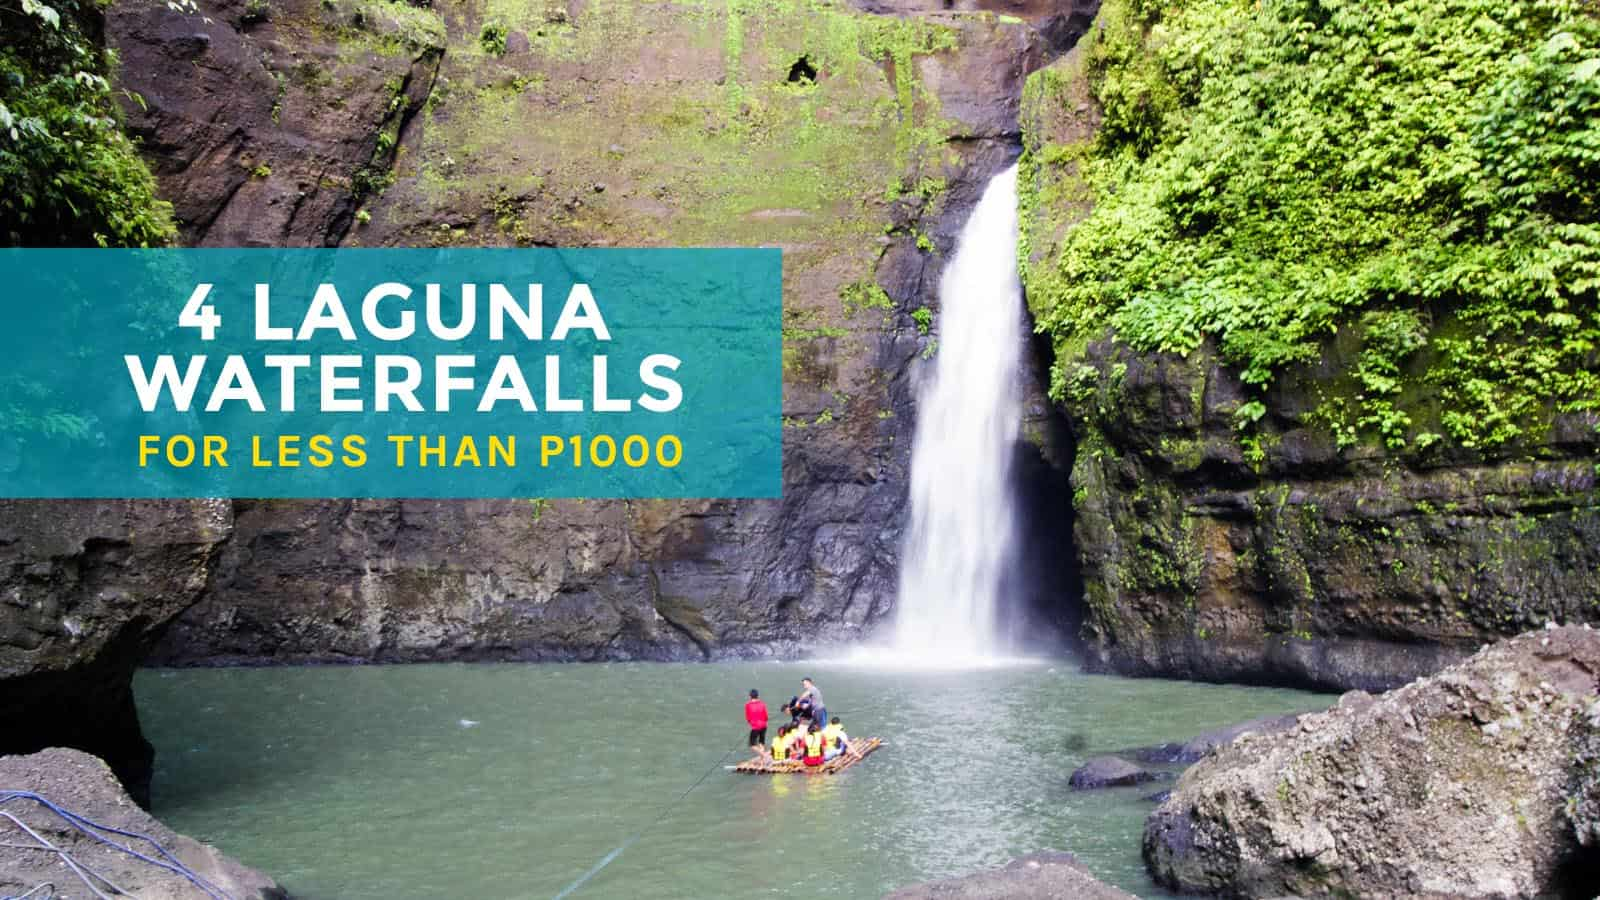 4 Laguna Waterfalls for Less than P1000: Hulugan, Cavinti Falls & More